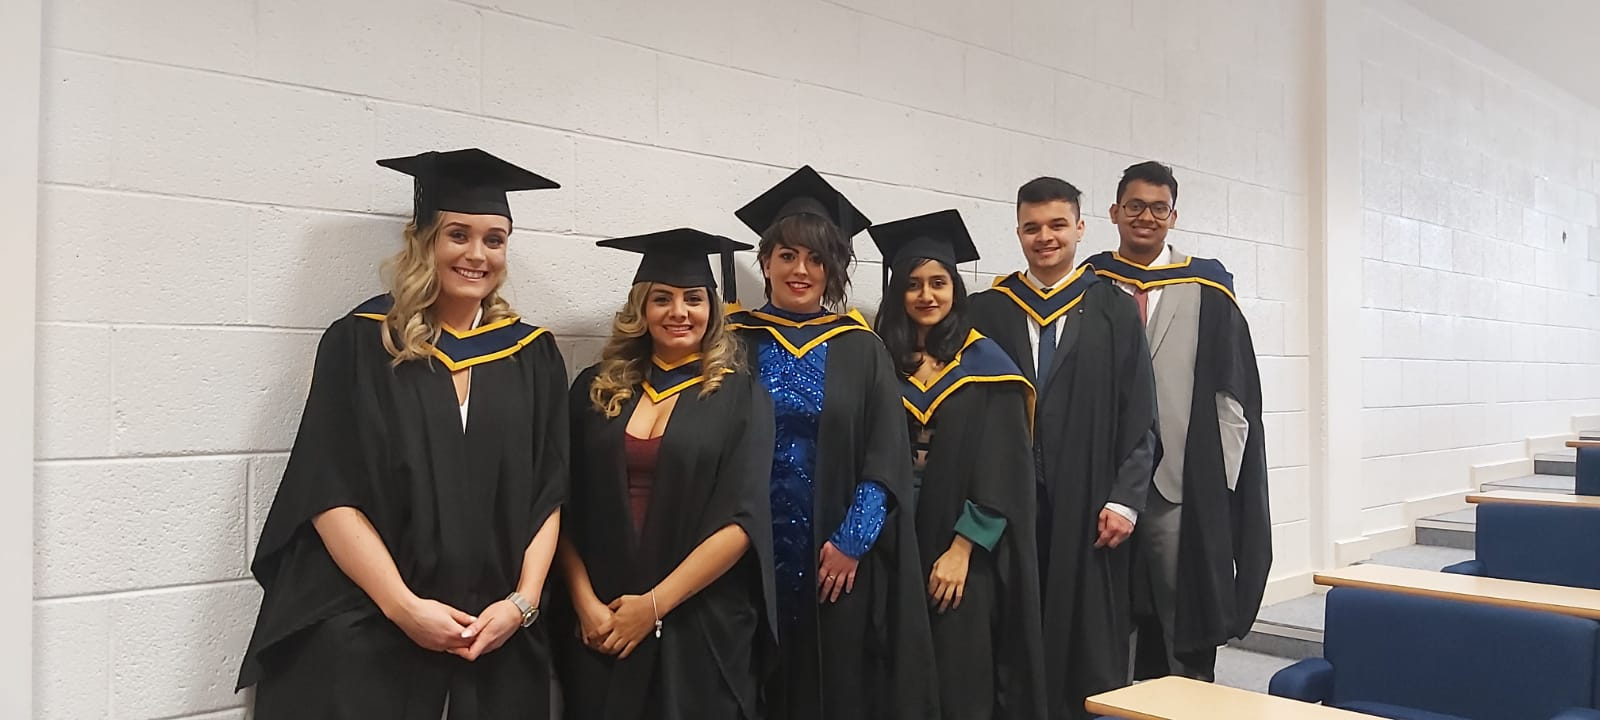 2019 AIT Graduates of MSc in Biopharmaceutical Technology Programme